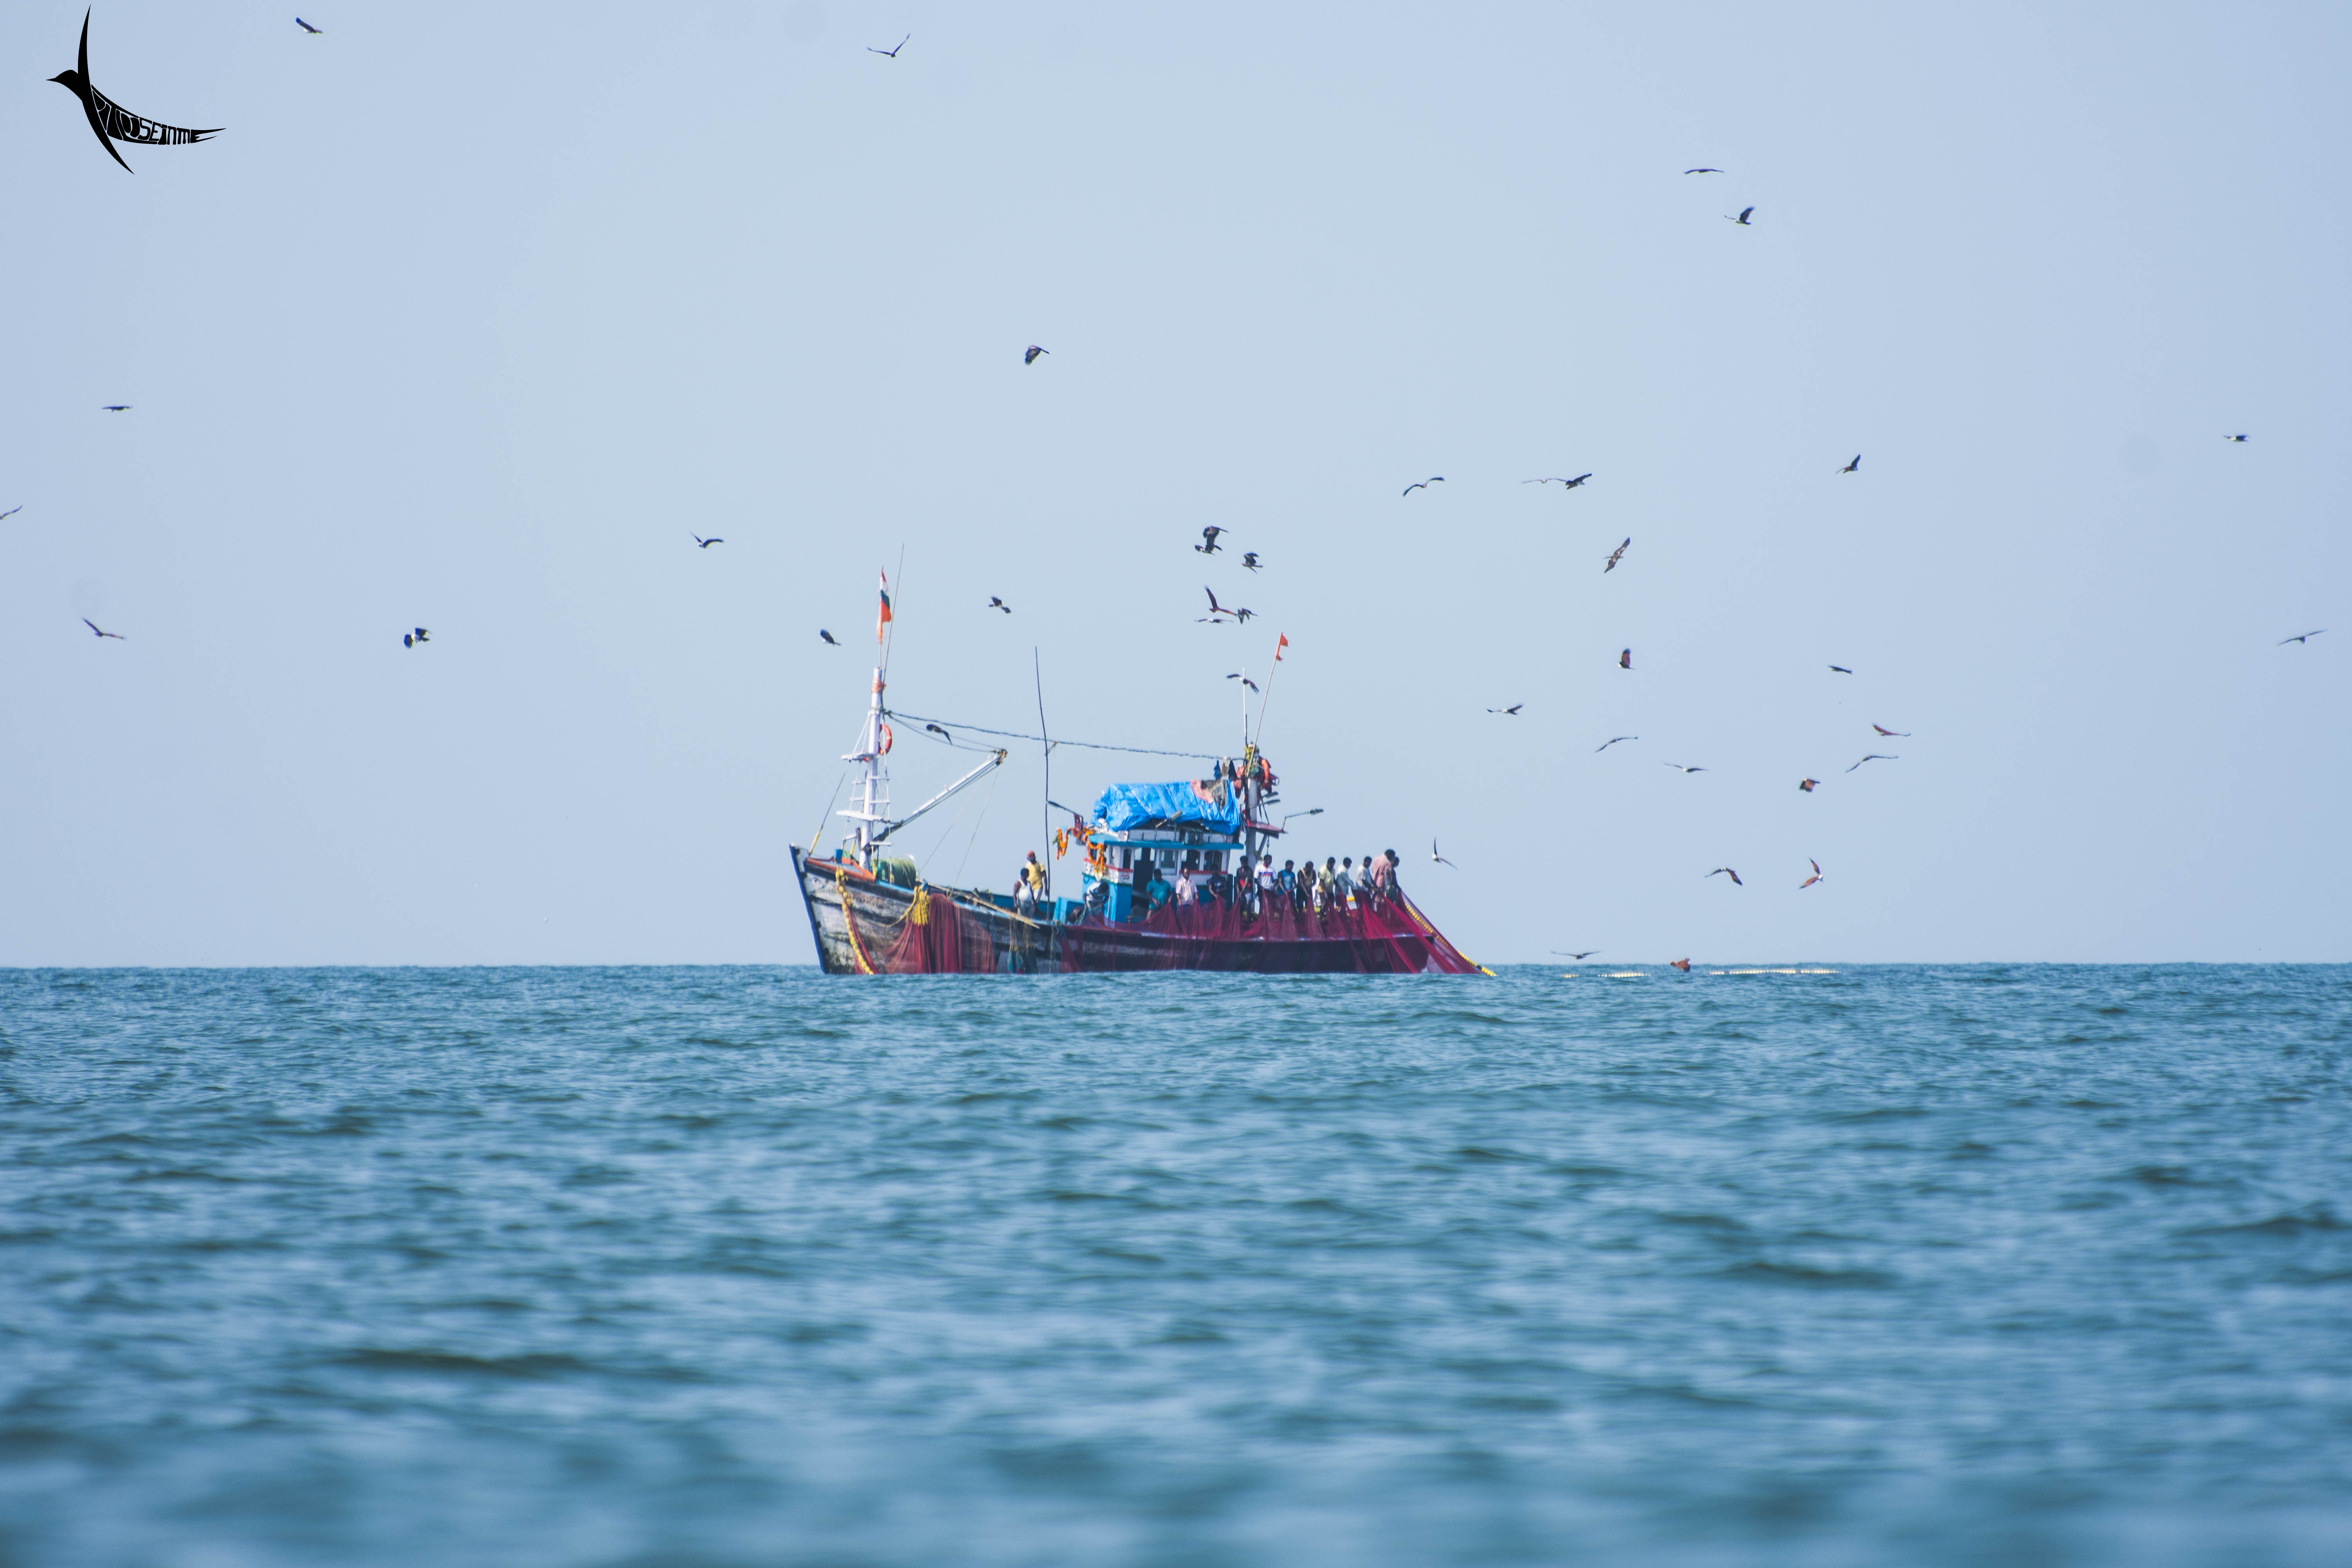 The fishing trawler surrounded by birds